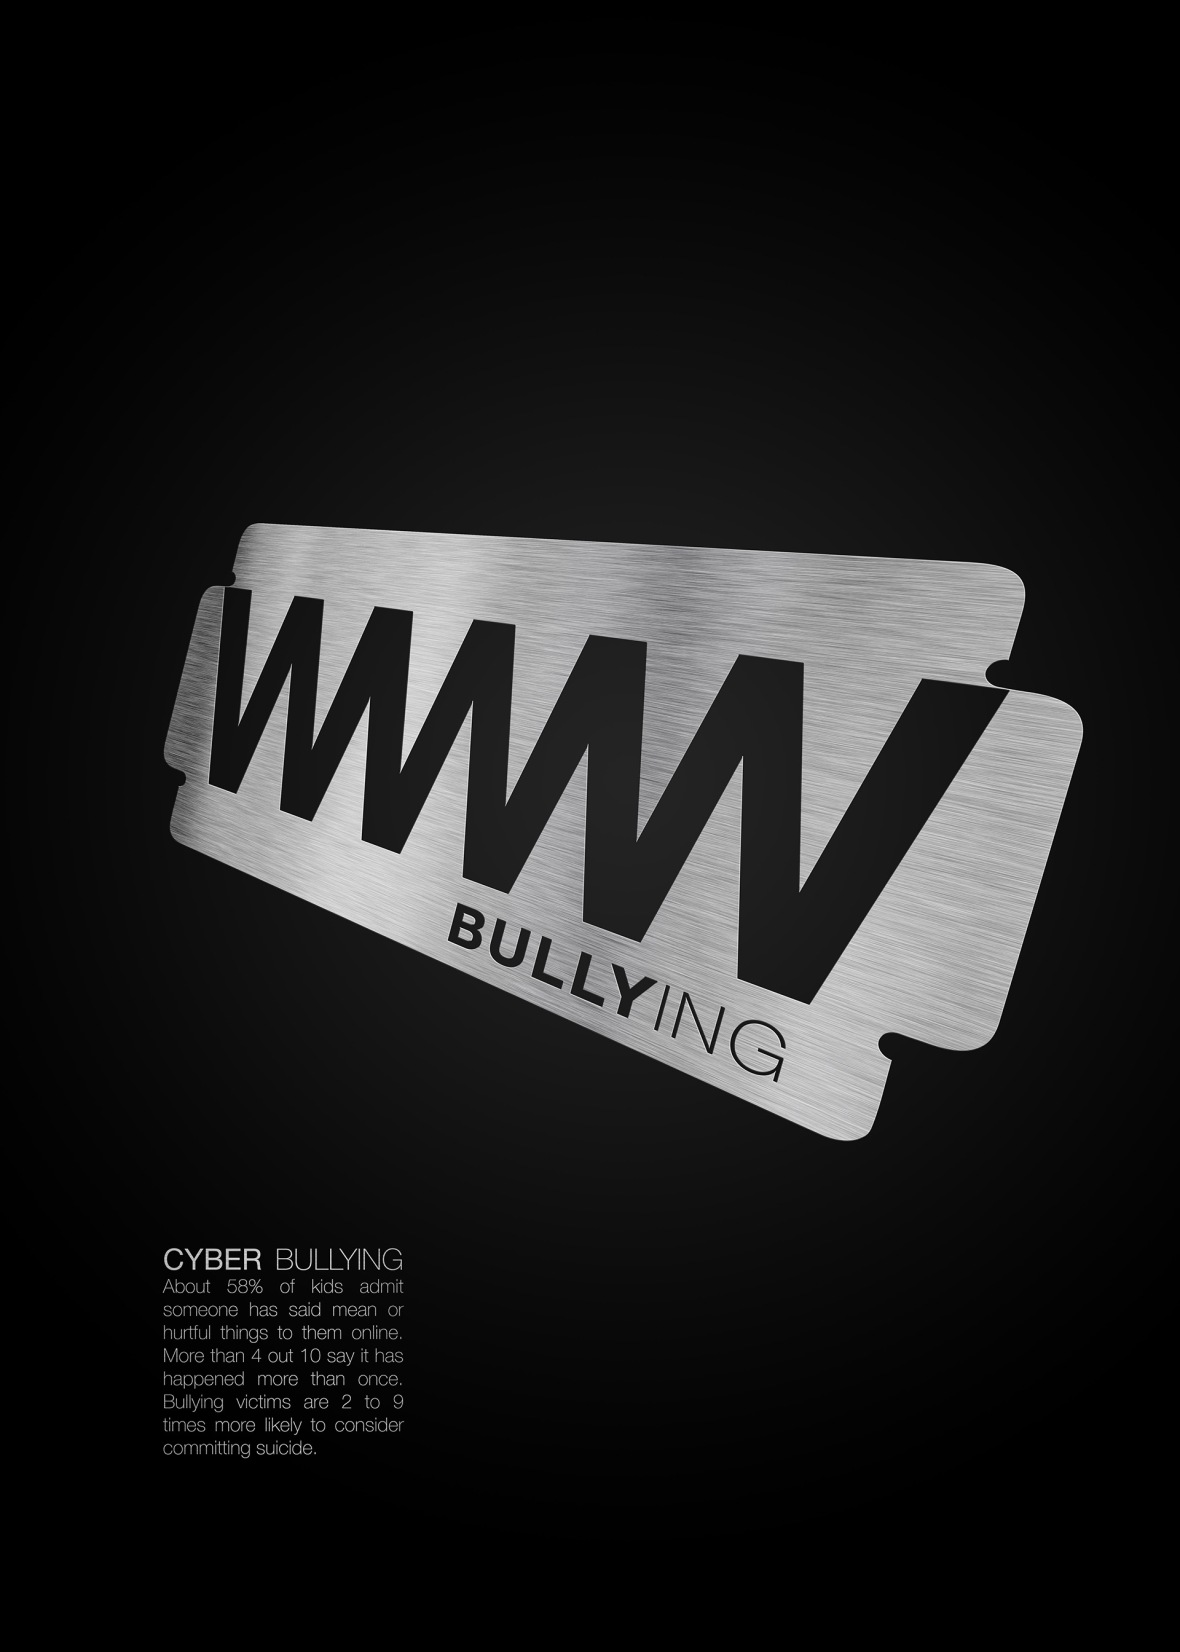 WWWBullying - Santiago Gómez